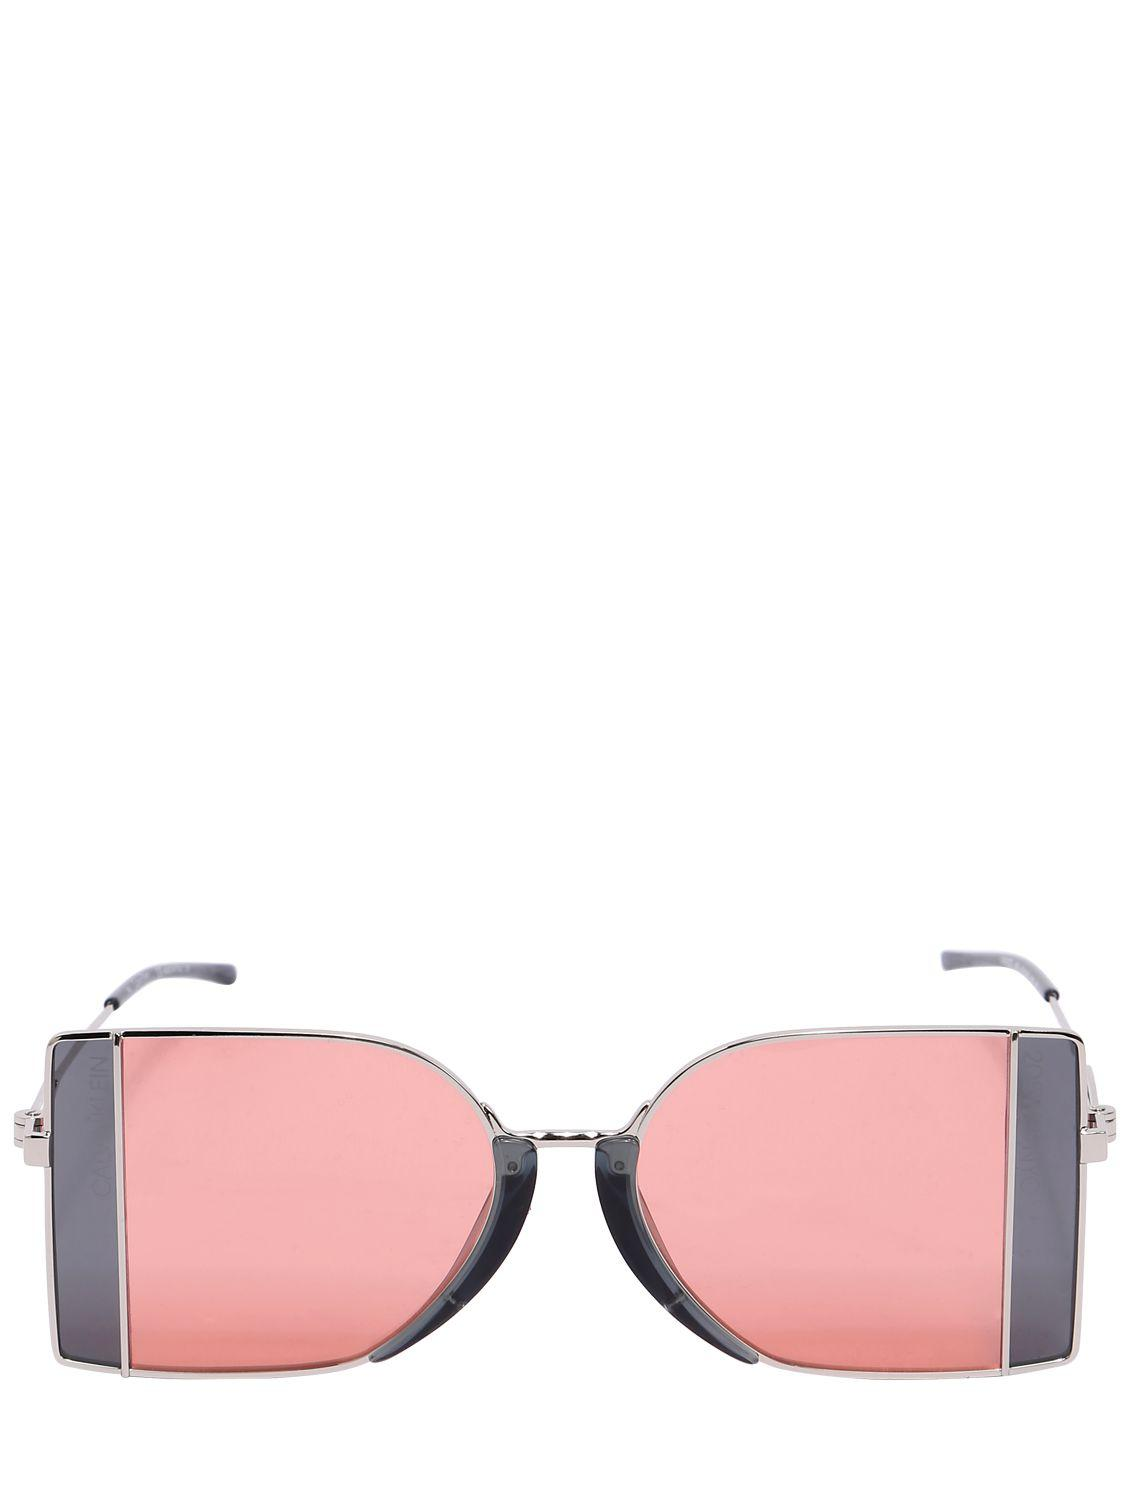 c99bff14a74 Lyst - CALVIN KLEIN 205W39NYC Squared See-thru Lens Sunglasses in Pink